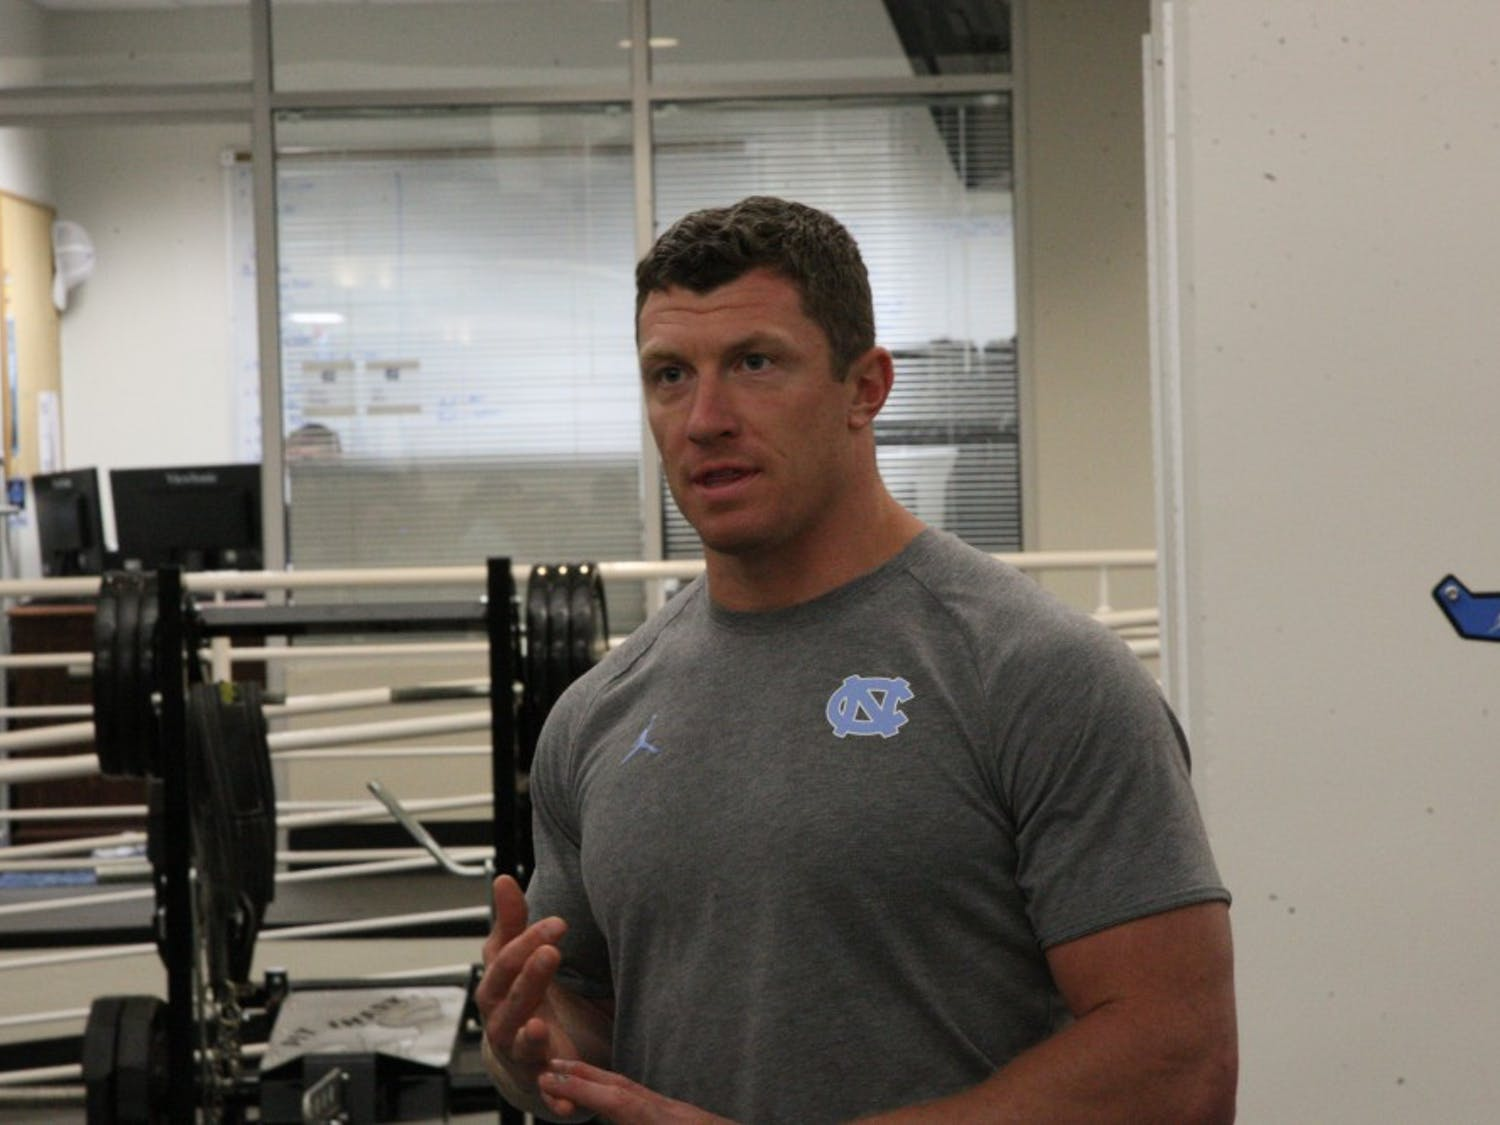 Brian Hess, the head strength & conditioning coach for UNC's football team, discusses the new weight room facilities for the 2019-2020 season.